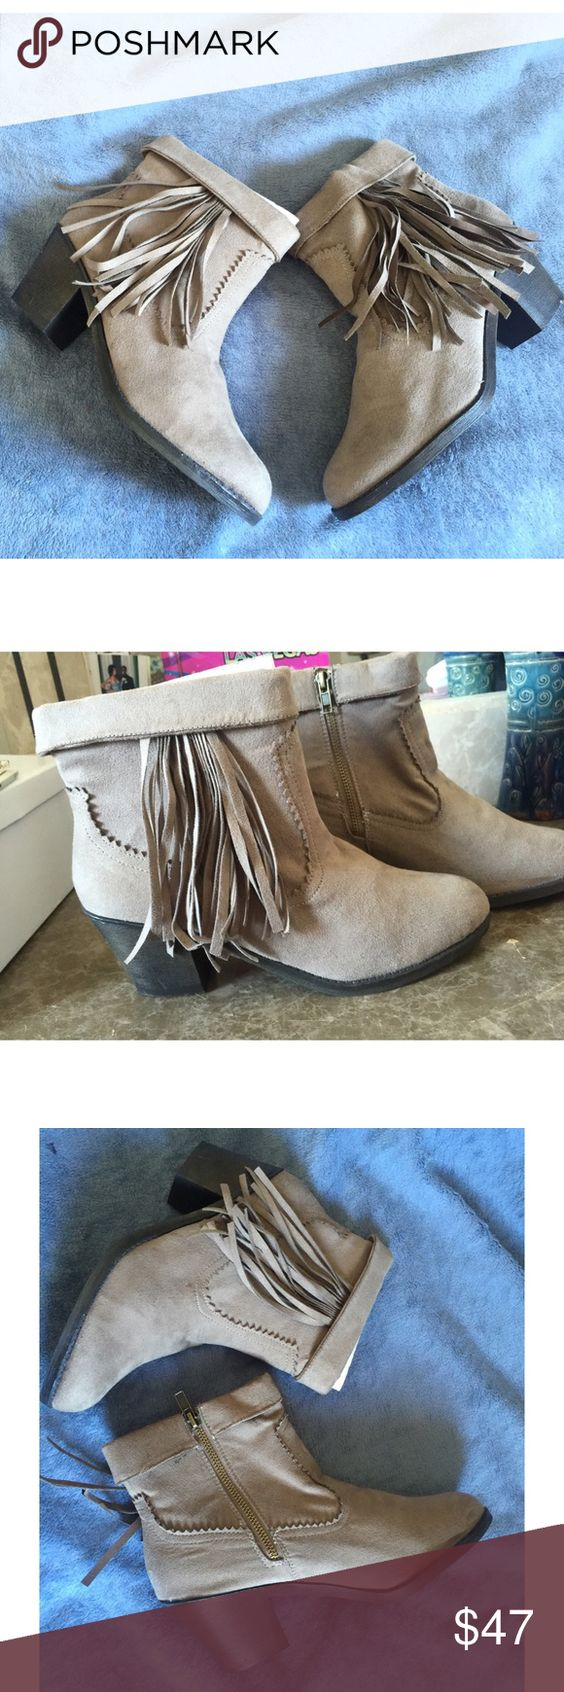 "Grey suede fringe booties Trendy gray fringe booties . Zipper closure , heel height around 3"" inches.  Never before worn cute grey bootie ! Very comfortable for fall ! Shoes Ankle Boots & Booties"